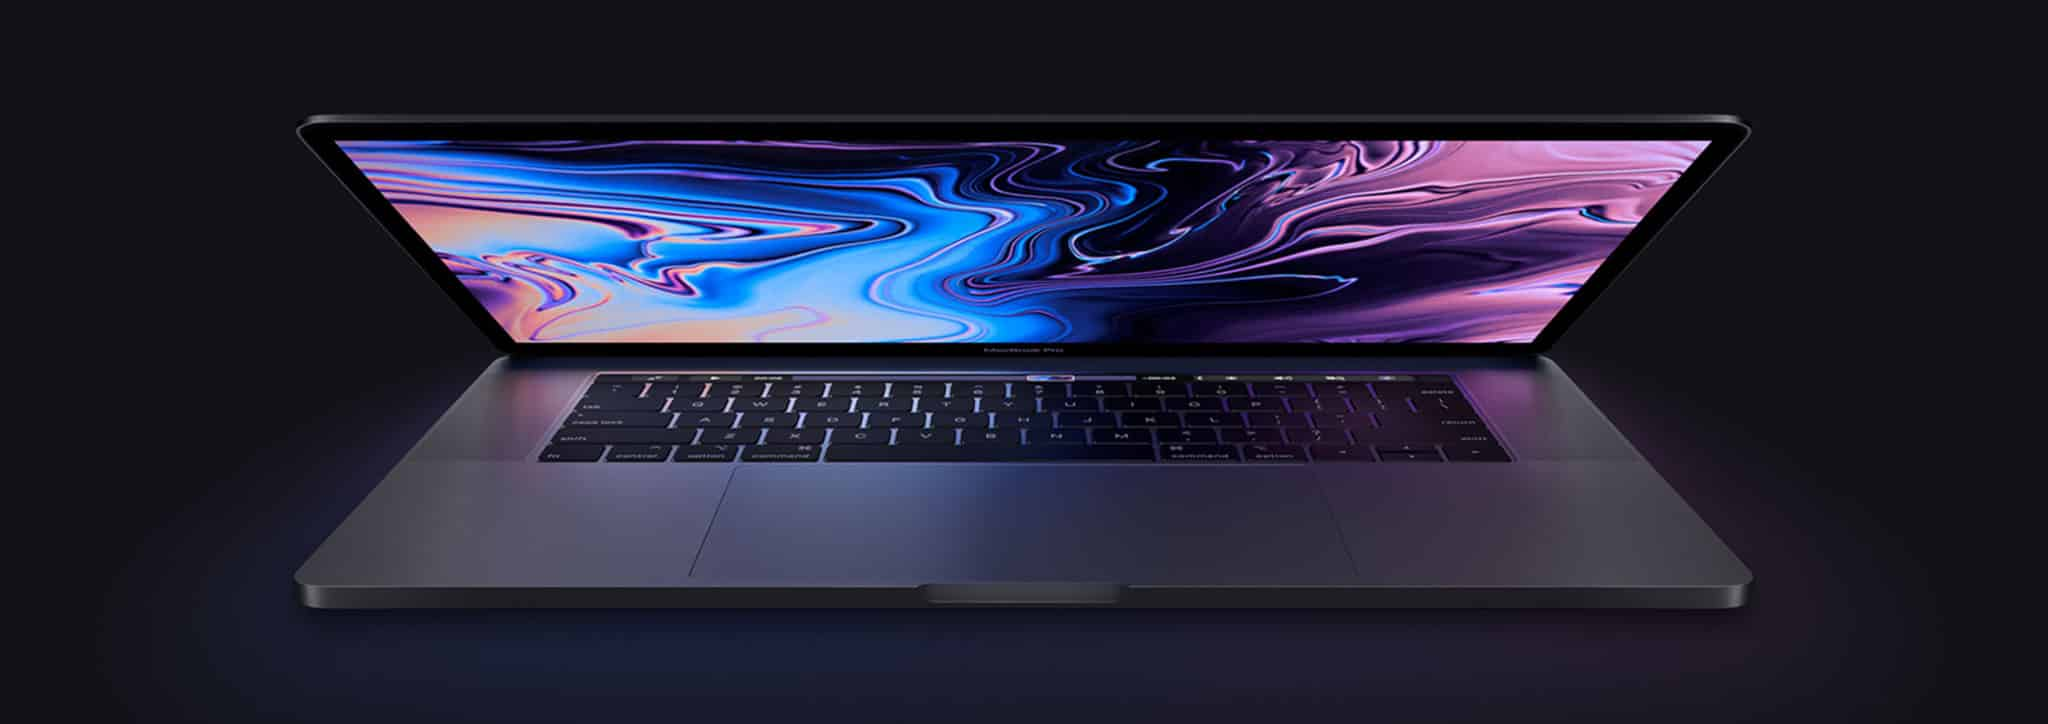 Apple MacBook MacBook Pro